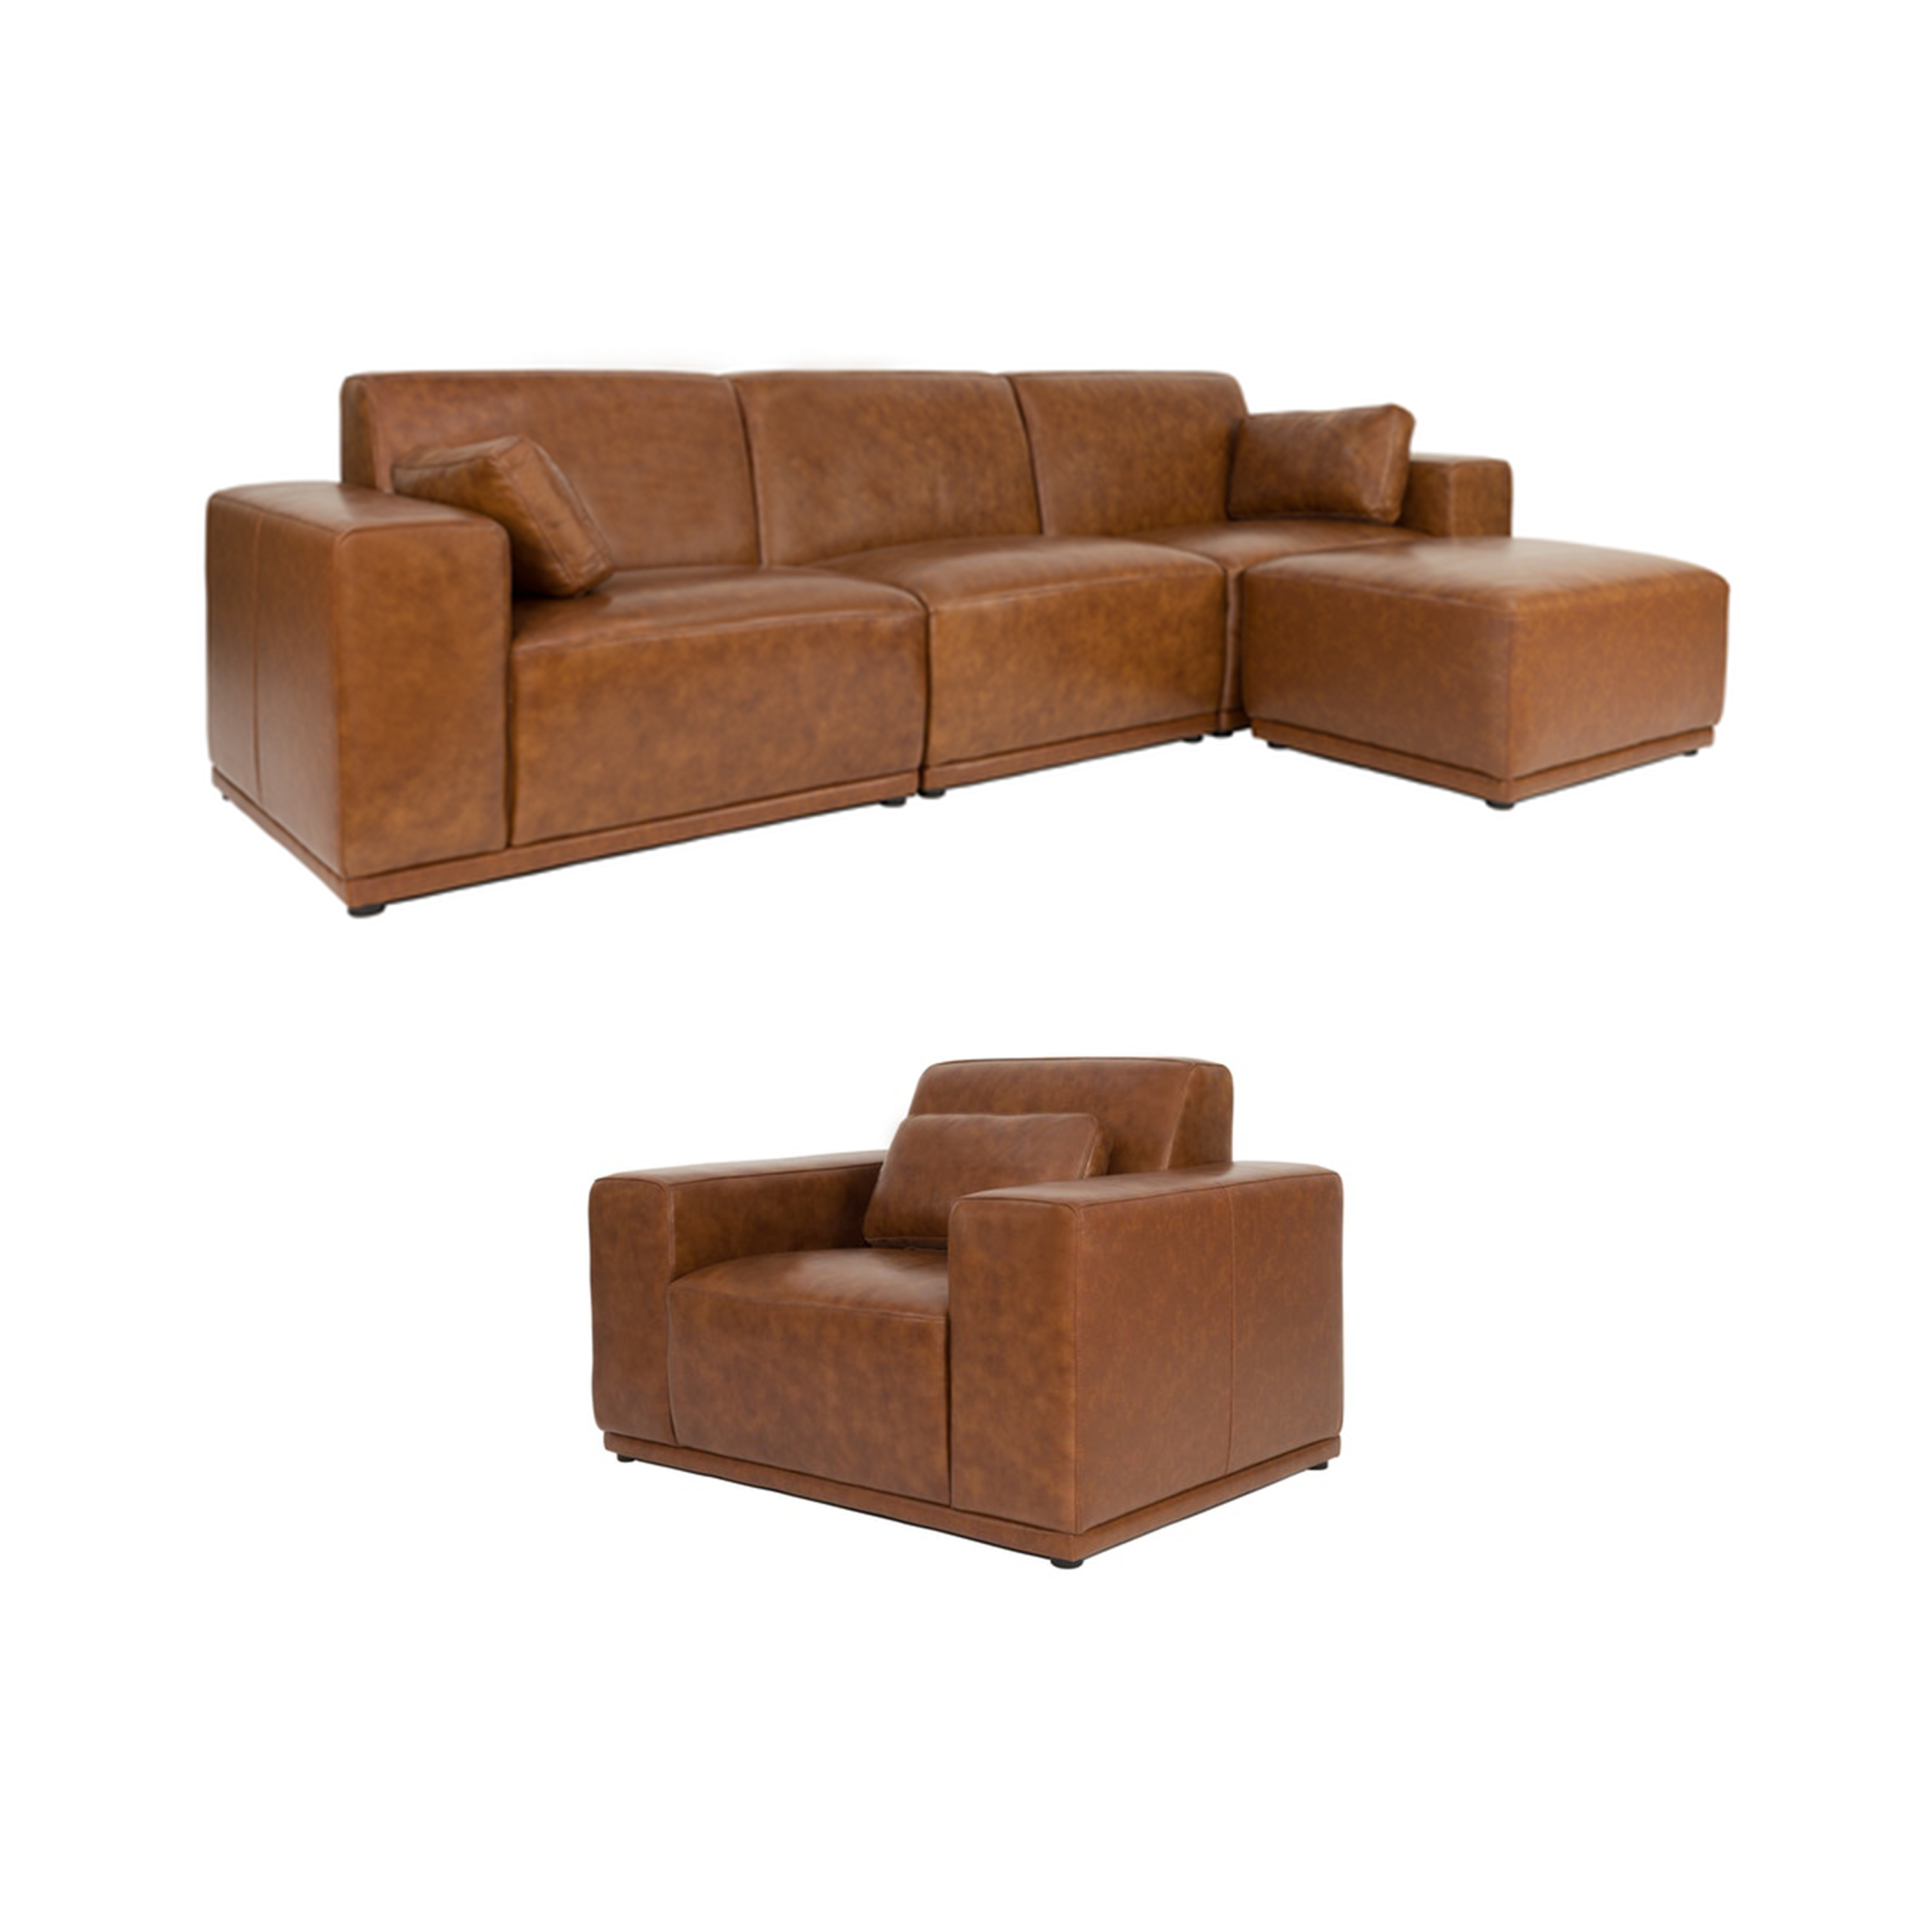 ... Milan 3 Seater Living Room Set With Ottoman   Cowhide   Image 1 Part 95